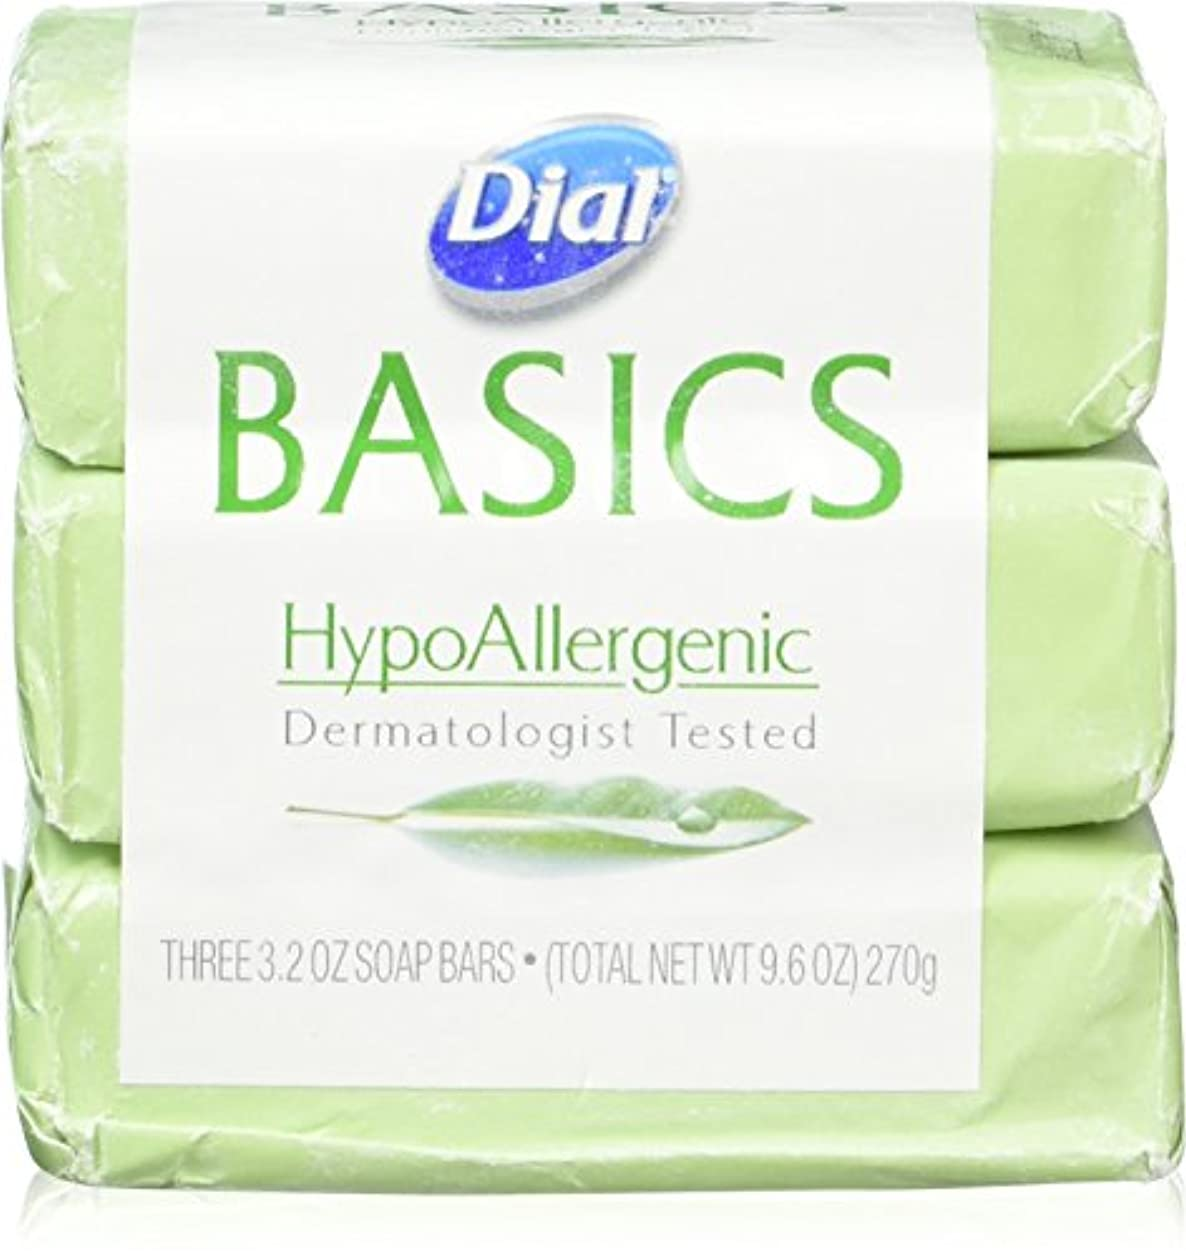 Dial Basics HypoAllergenic Dermatologist Tested Bar Soap, 3.2 oz (12 Bars) by Basics